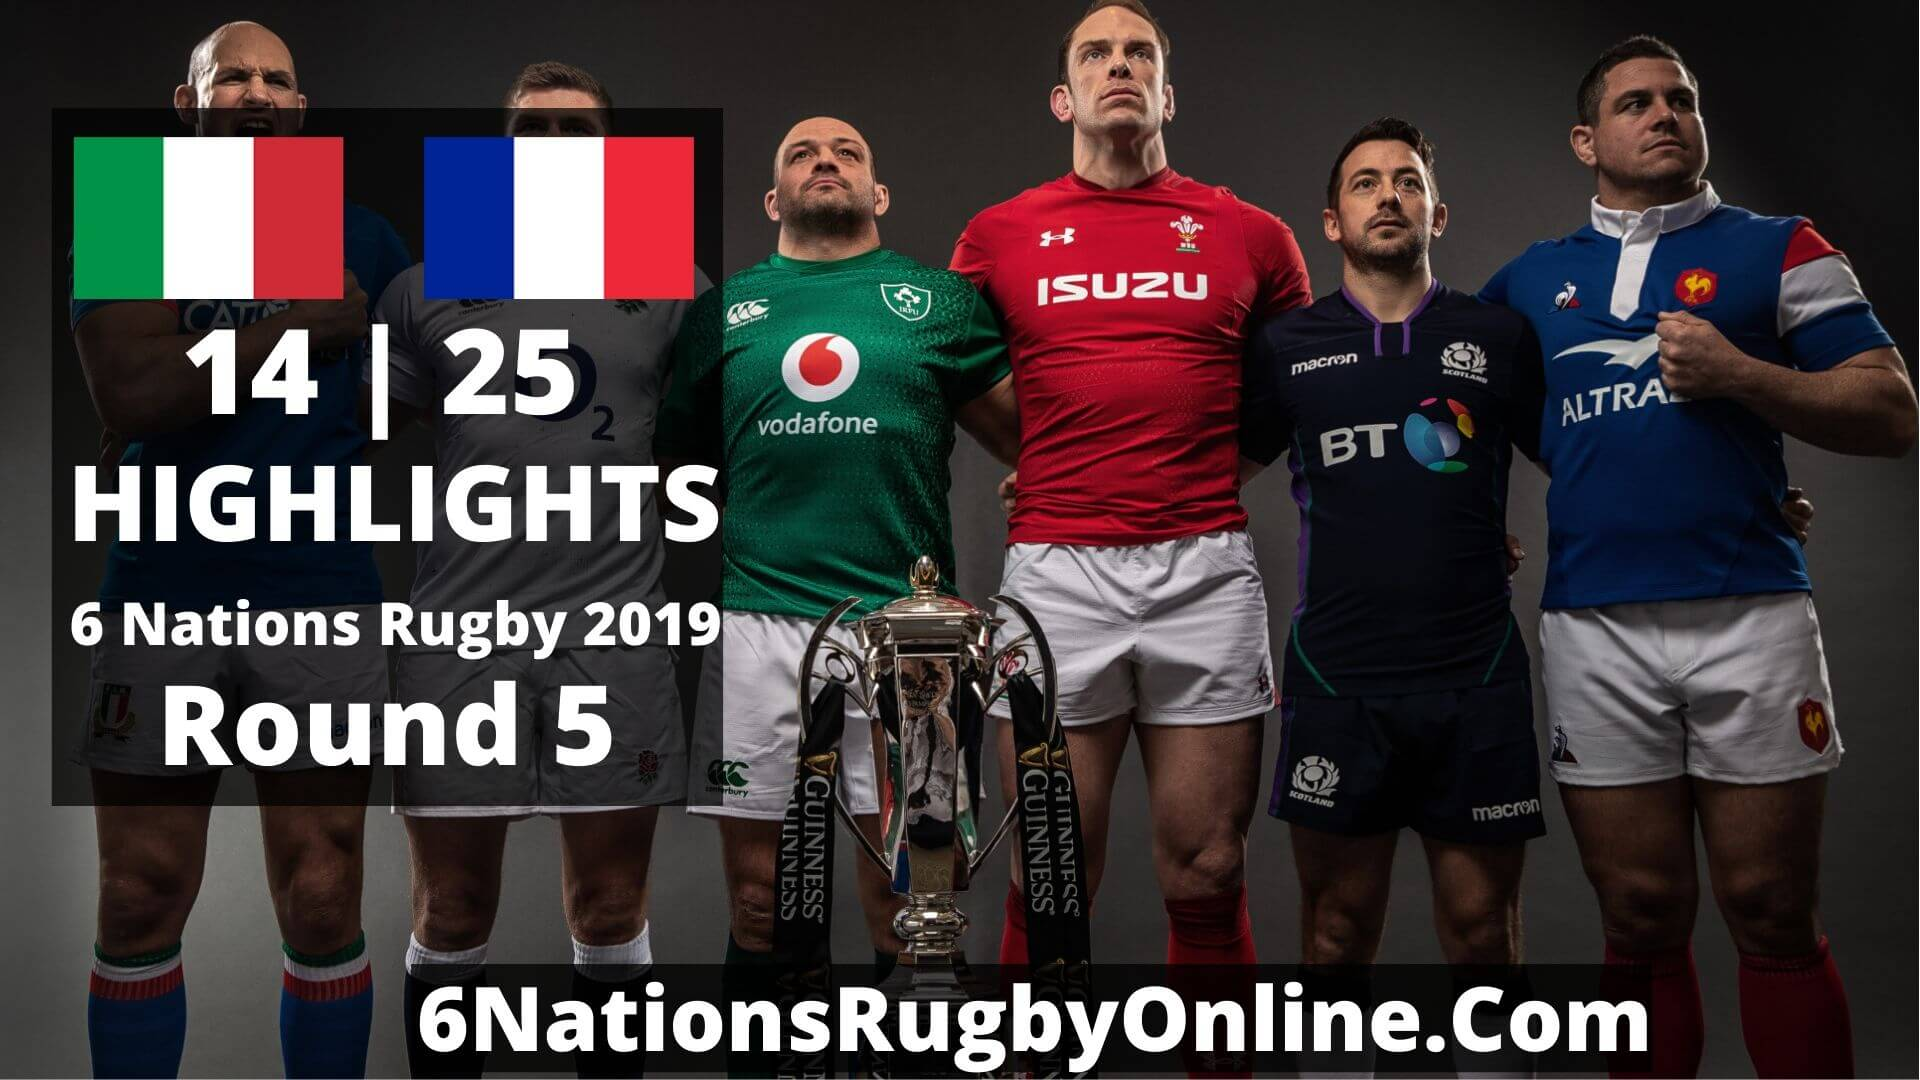 Italy Vs France Highlights 2019 Six Nations Rugby Round 5